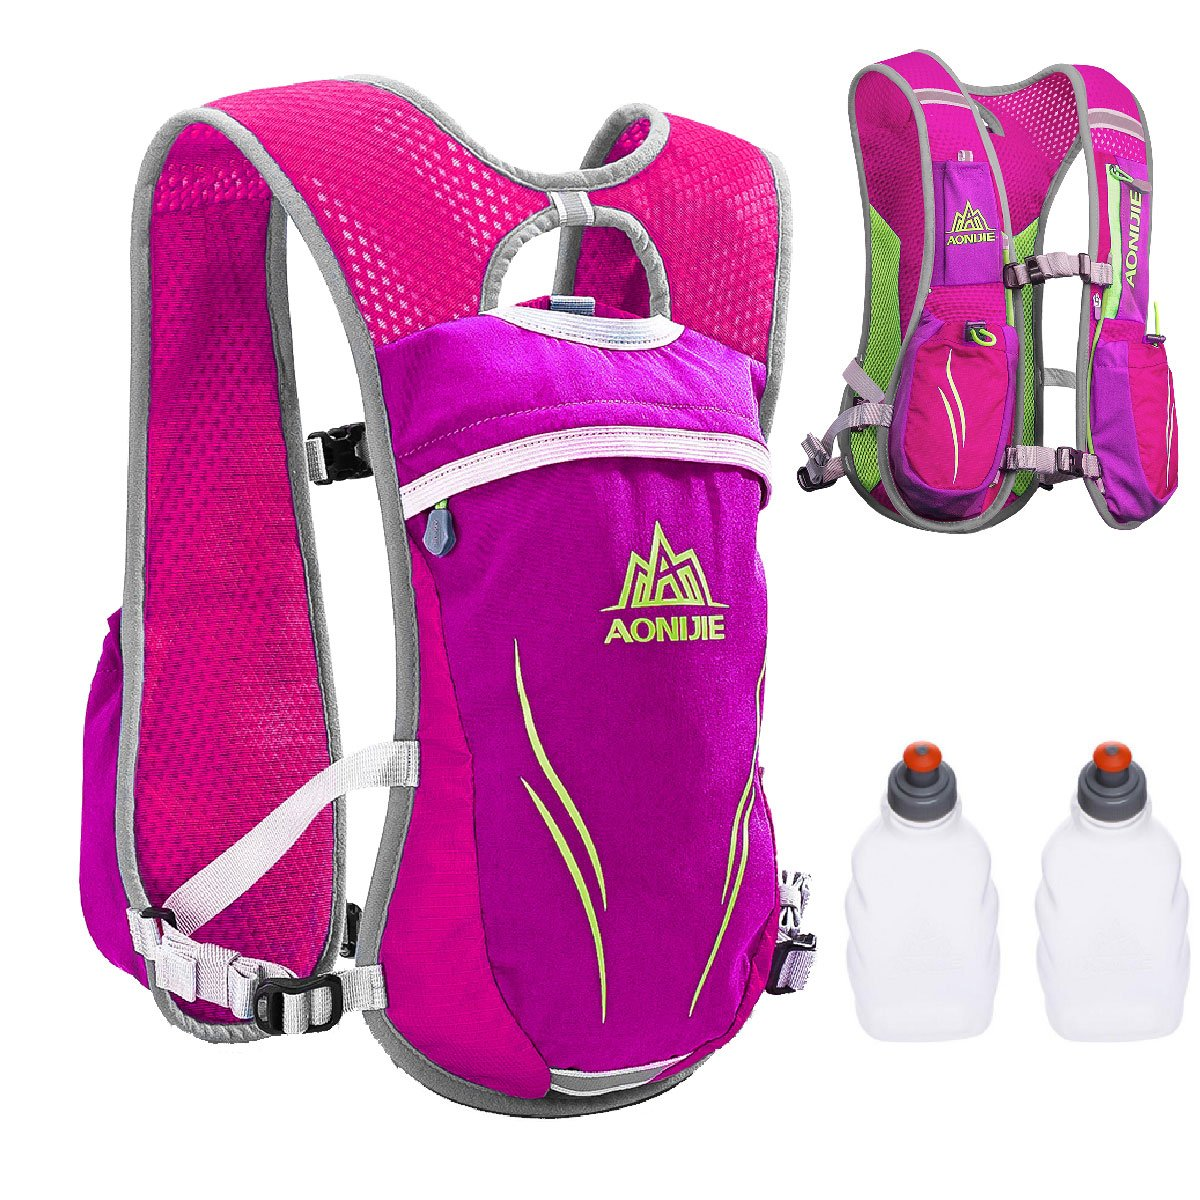 TRIWONDER Hydration Pack Backpack 5.5L Outdoors Mochilas Trail Marathoner Running Race Hydration Vest (Rose Red - with 2 Water Bottles)